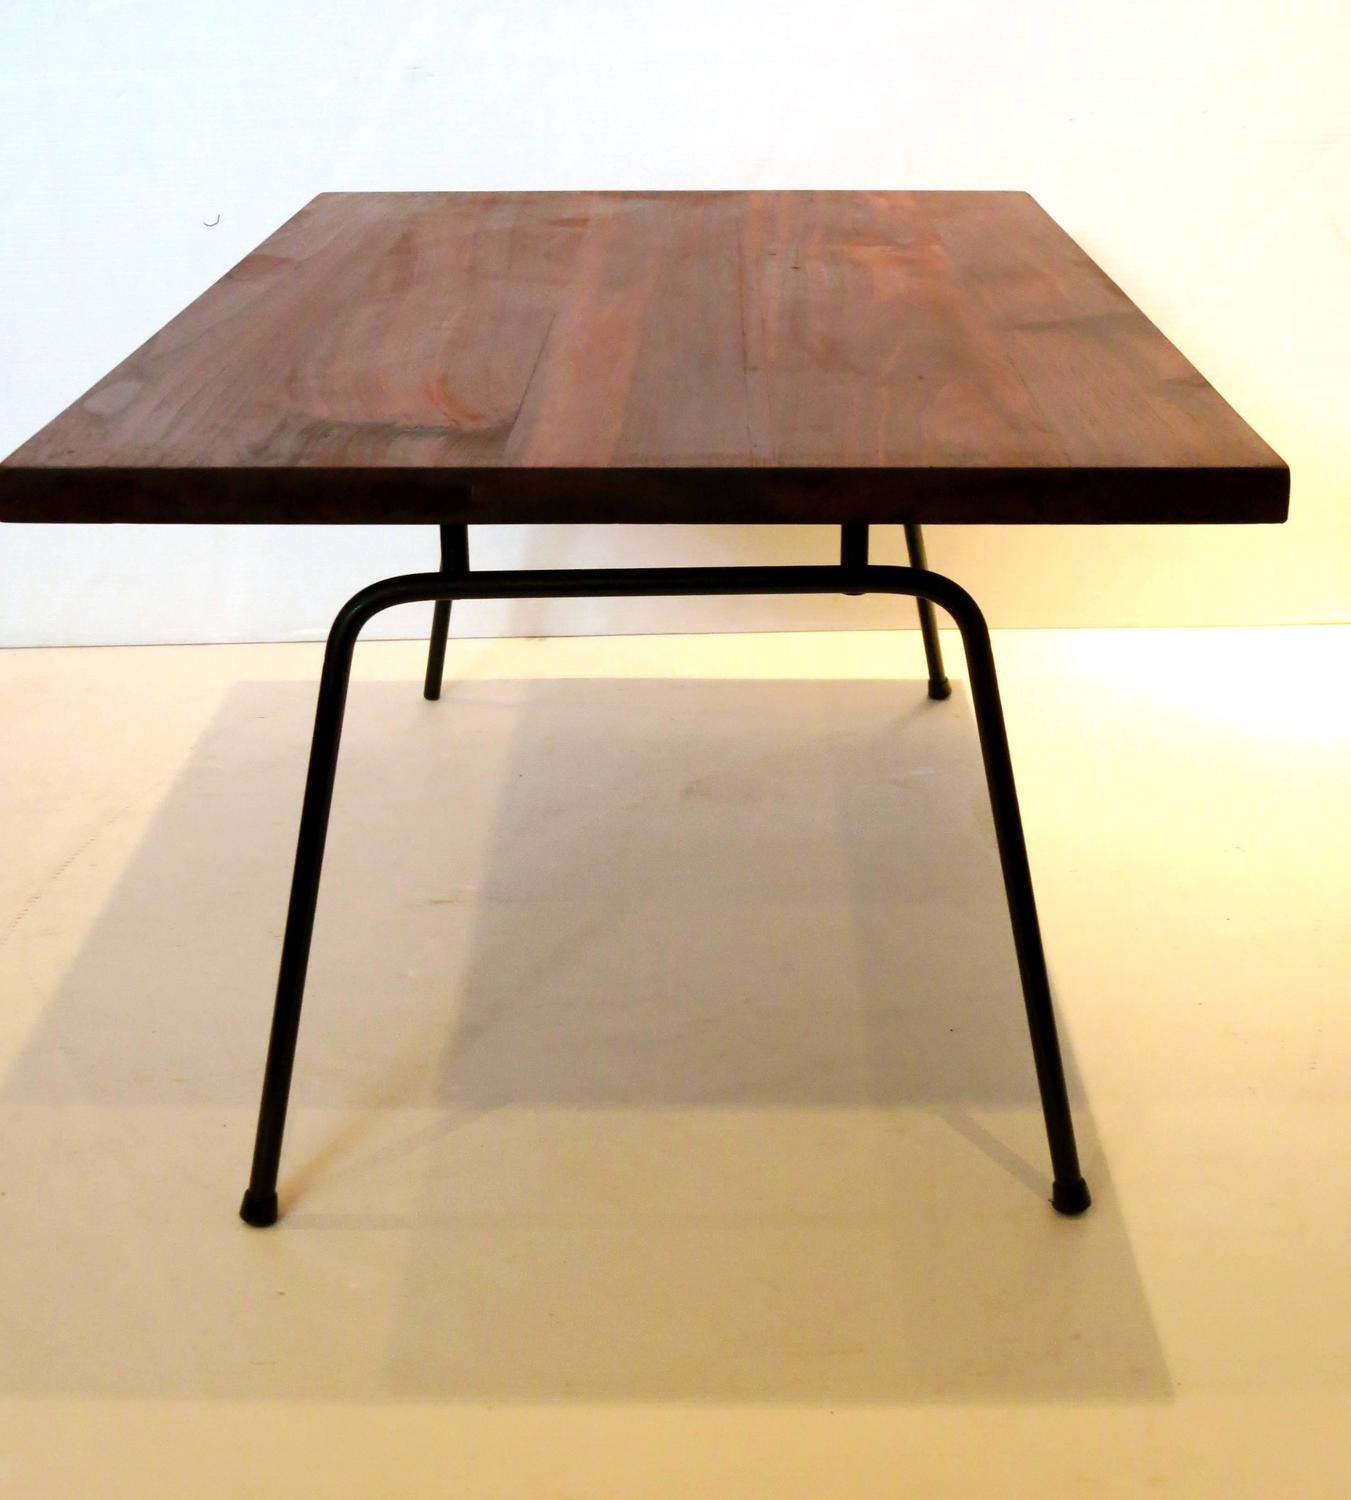 1950s Solid American Modern Walnut Atomic Age Small Coffee Table For Sale At 1stdibs